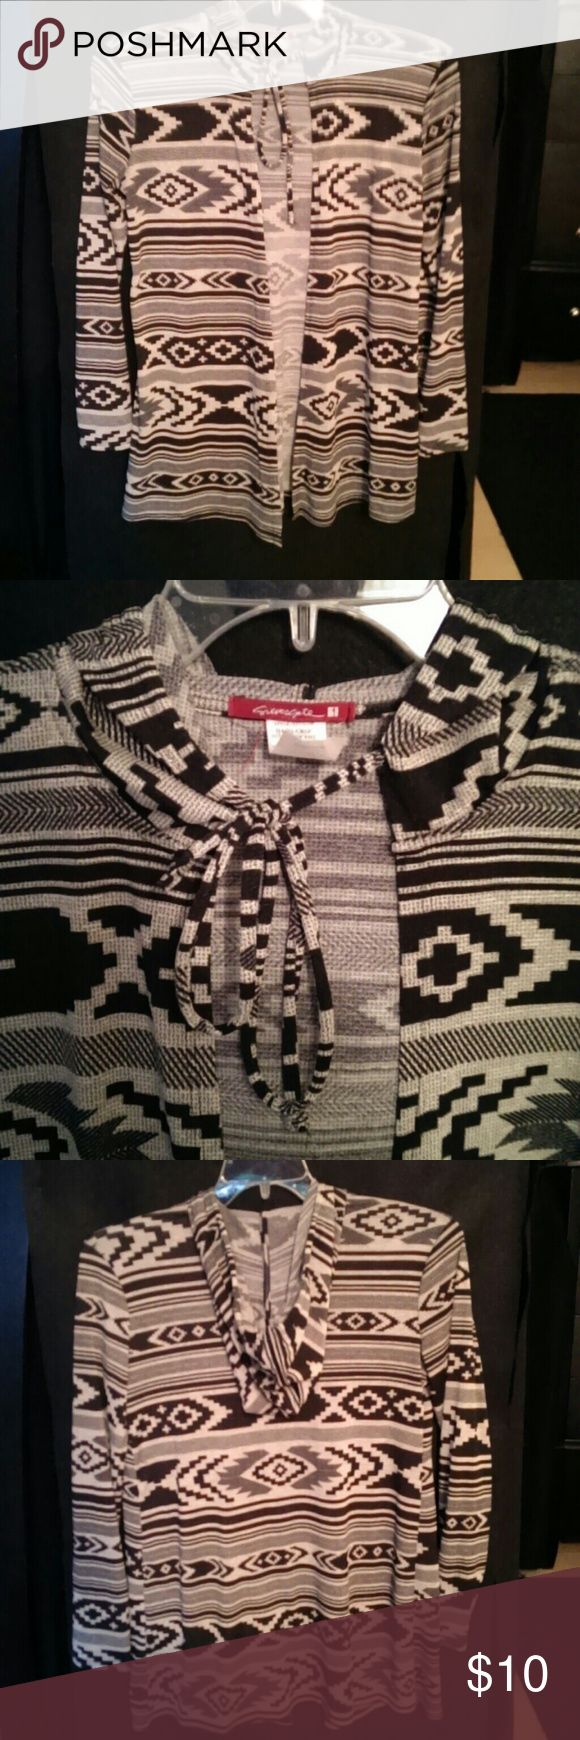 Aztec print cardigan Like new No flaws Love Culture Sweaters Cardigans